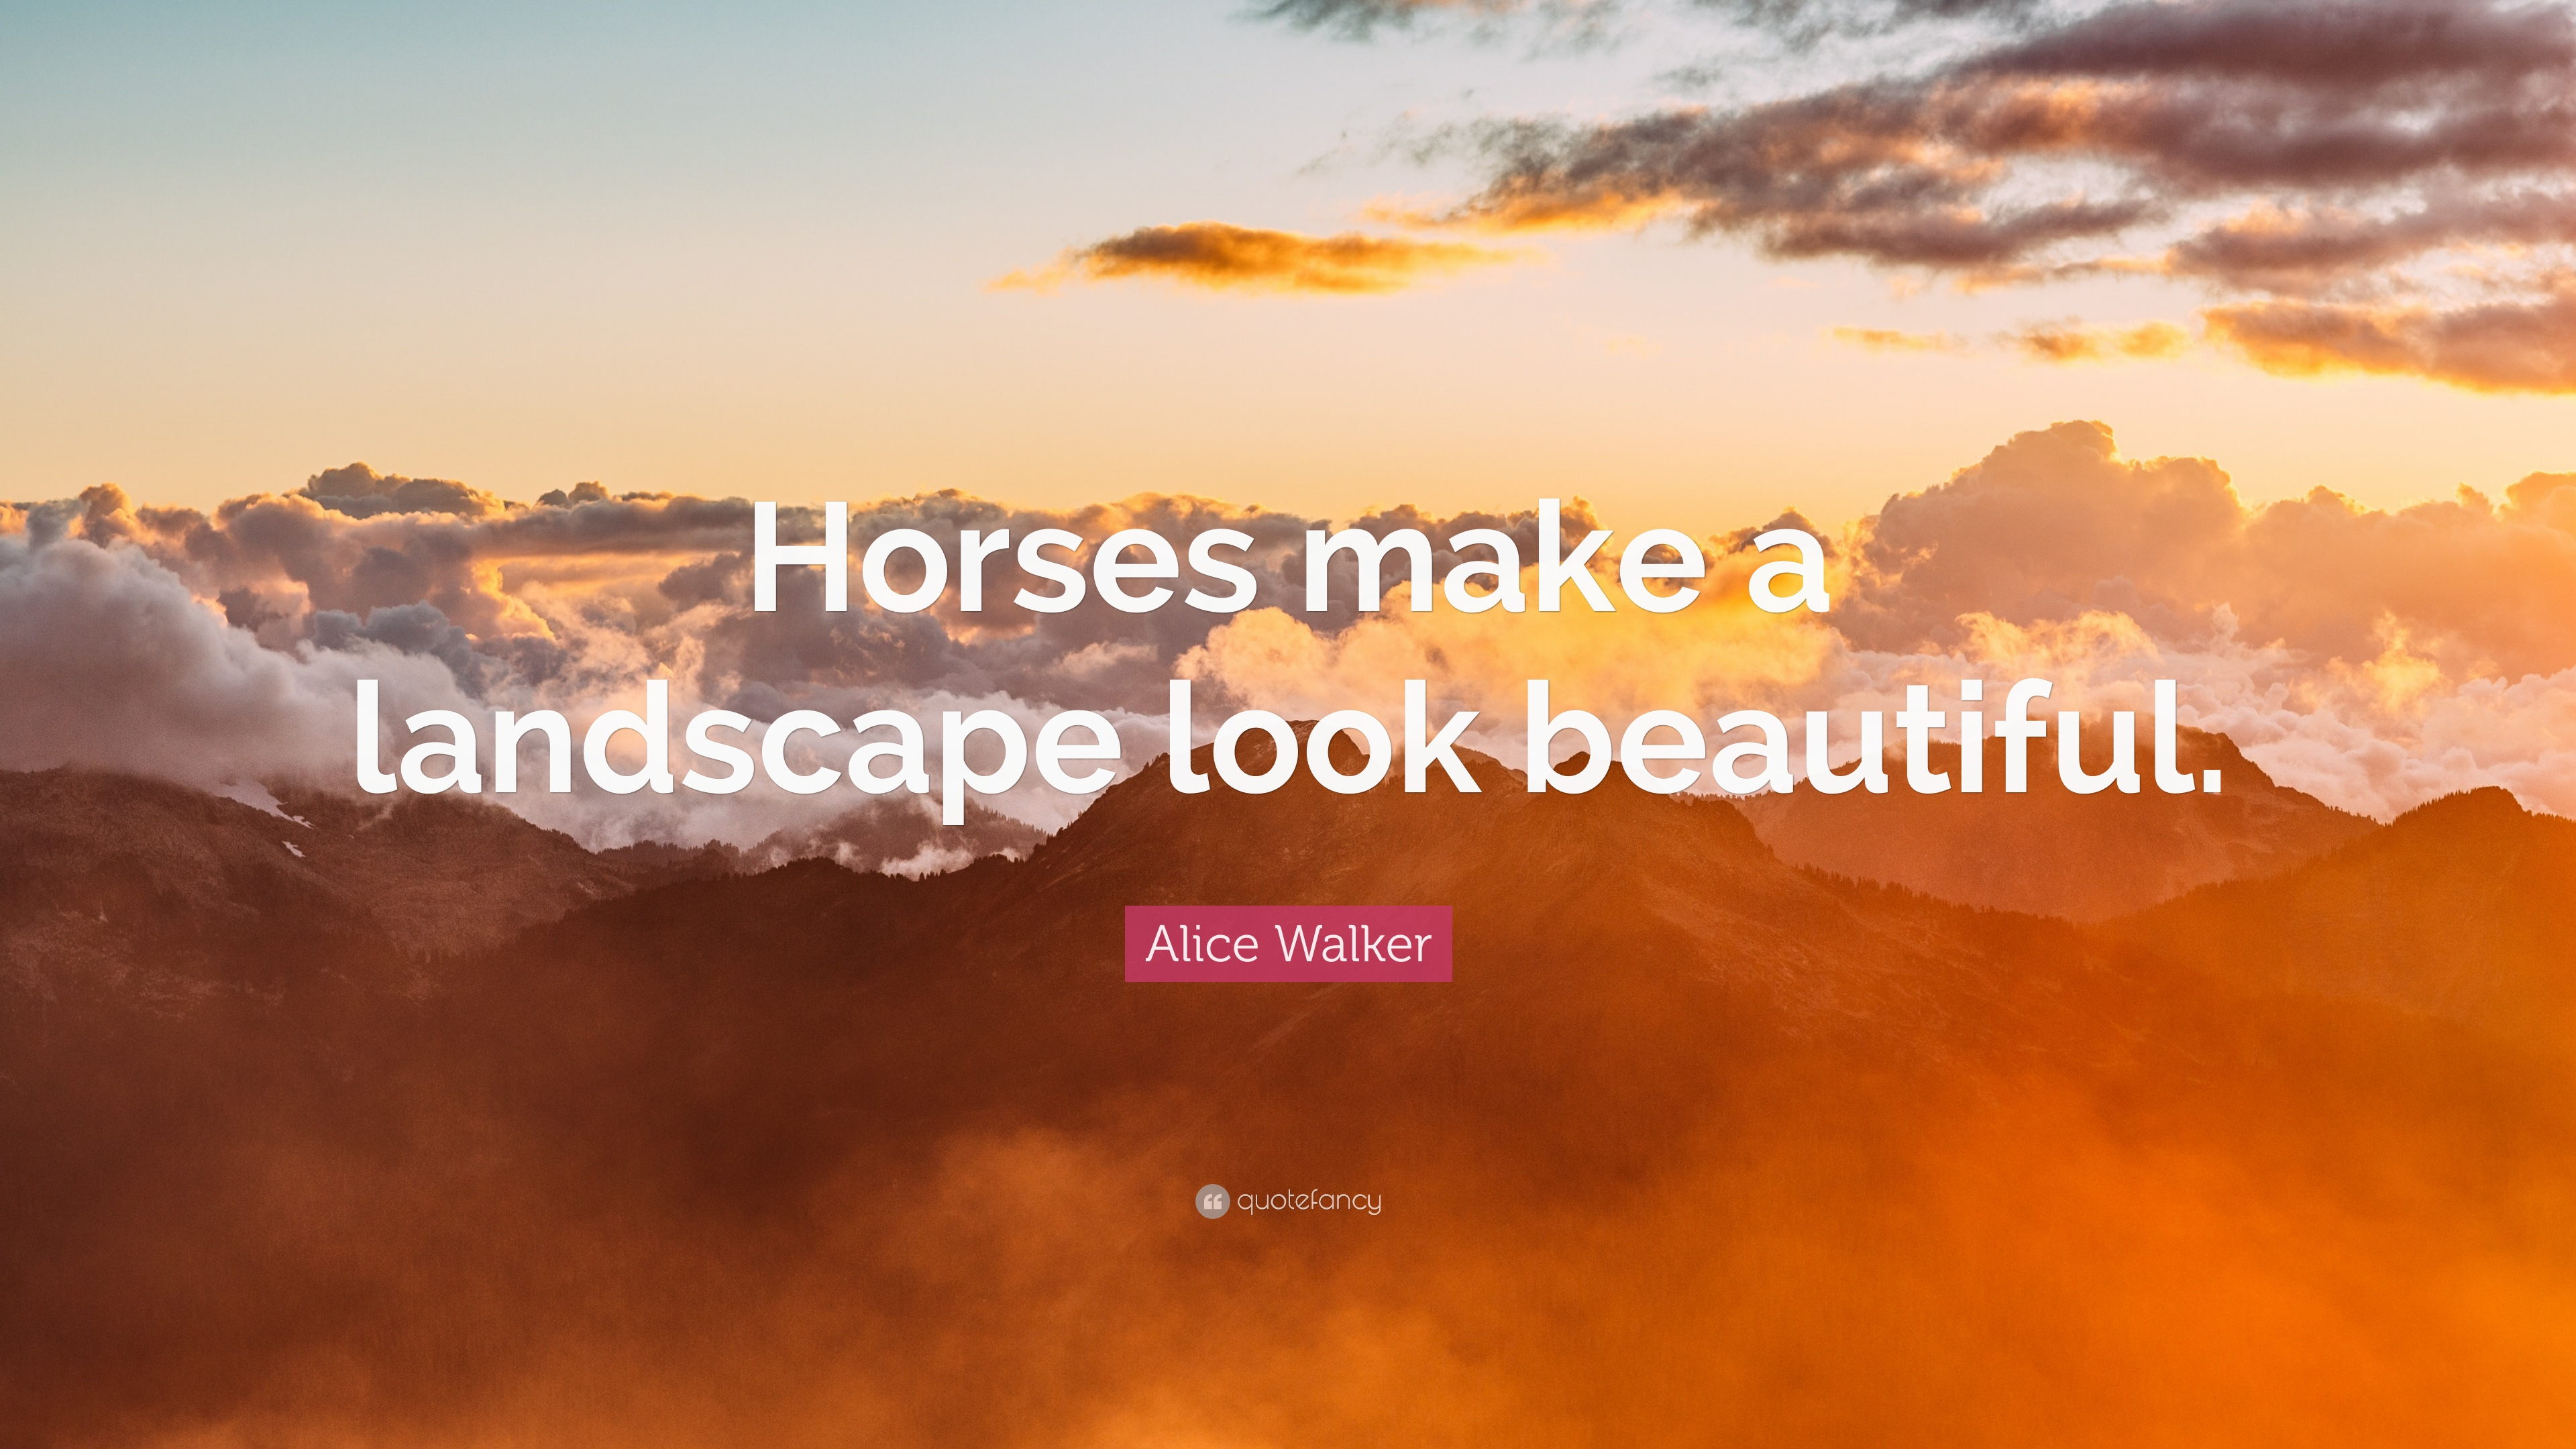 Alice Walker Quote: U201cHorses Make A Landscape Look Beautiful.u201d